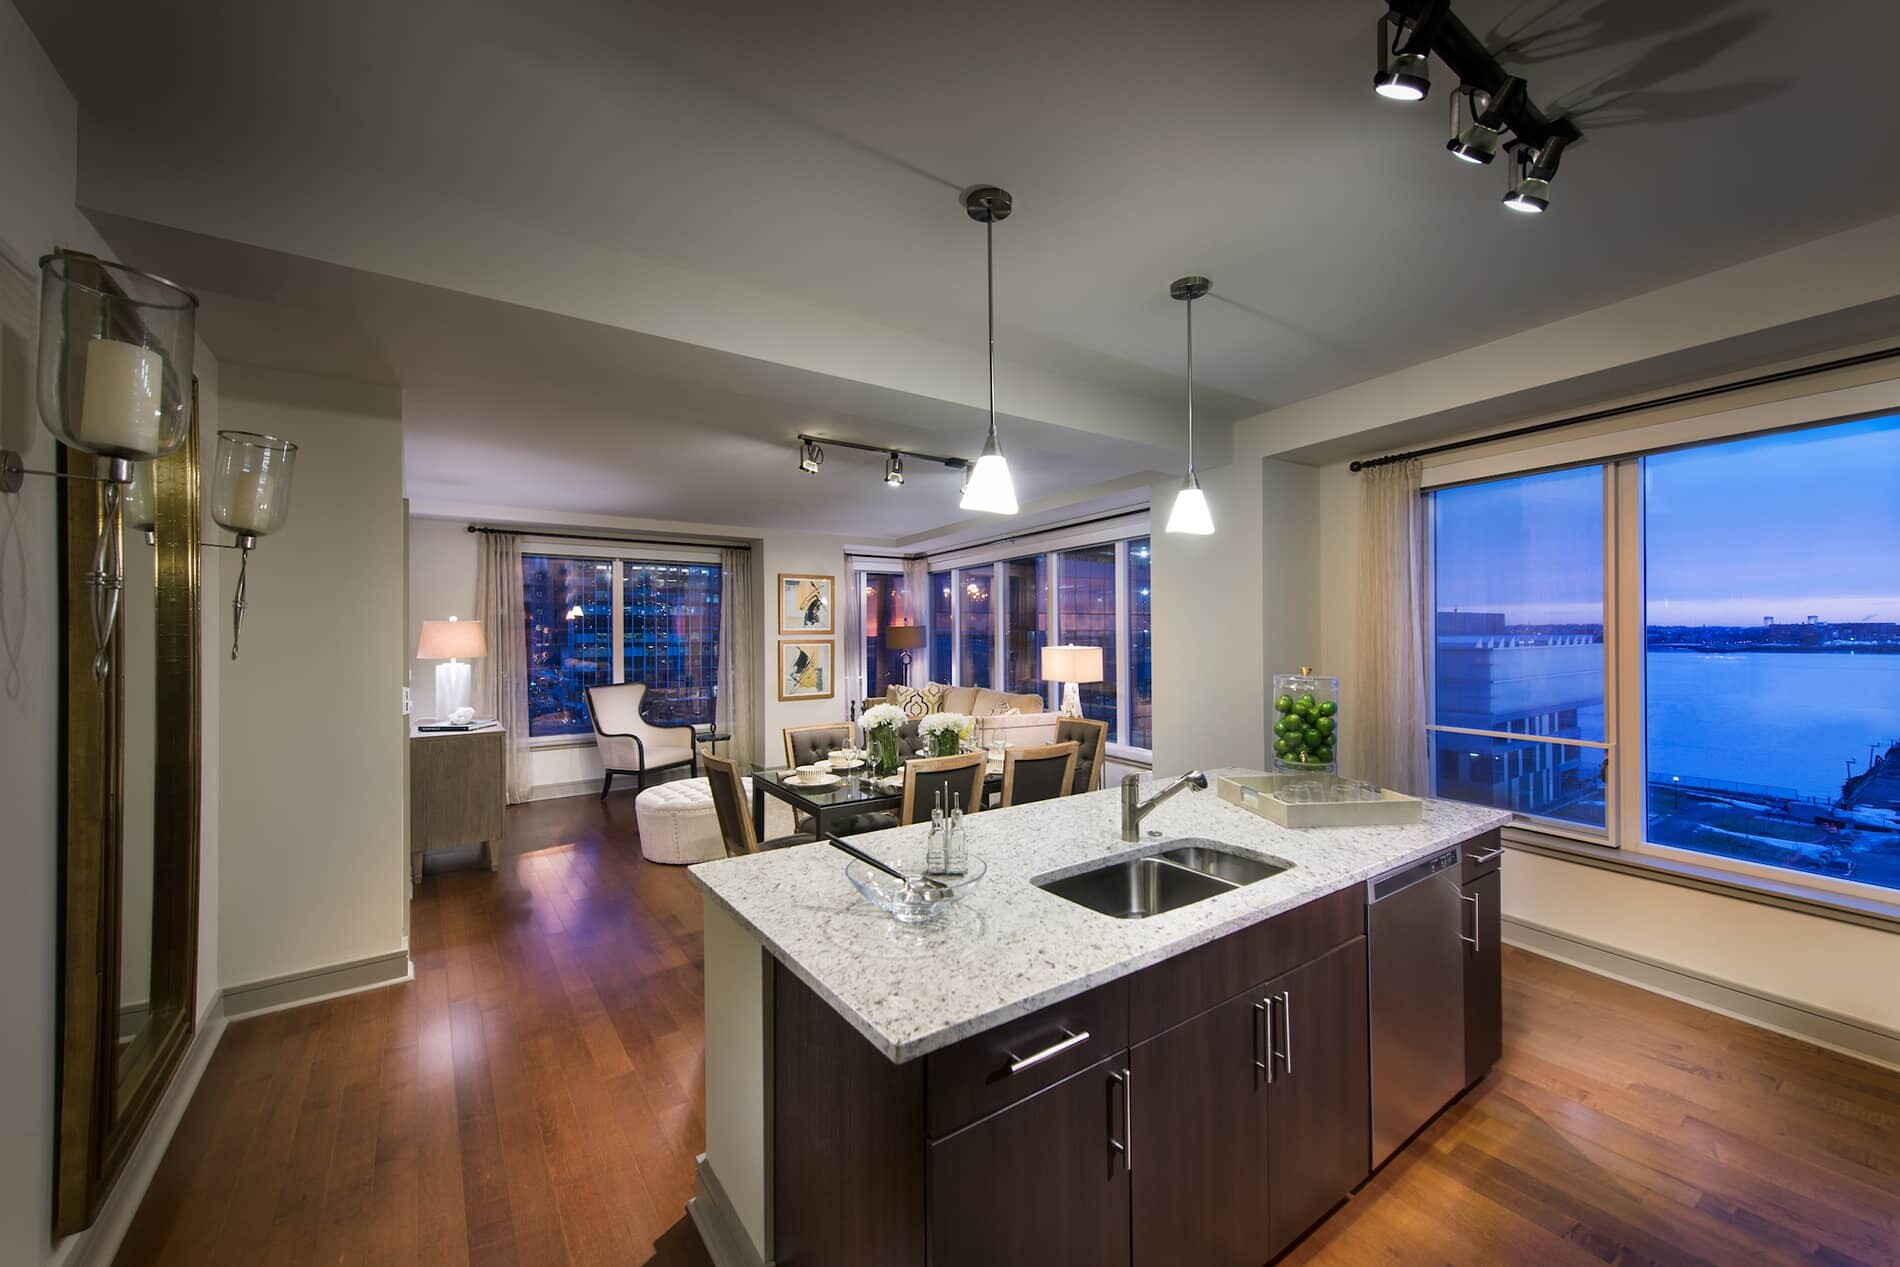 2 Beds, 2 Baths apartment in Boston, Seaport District for $5,615